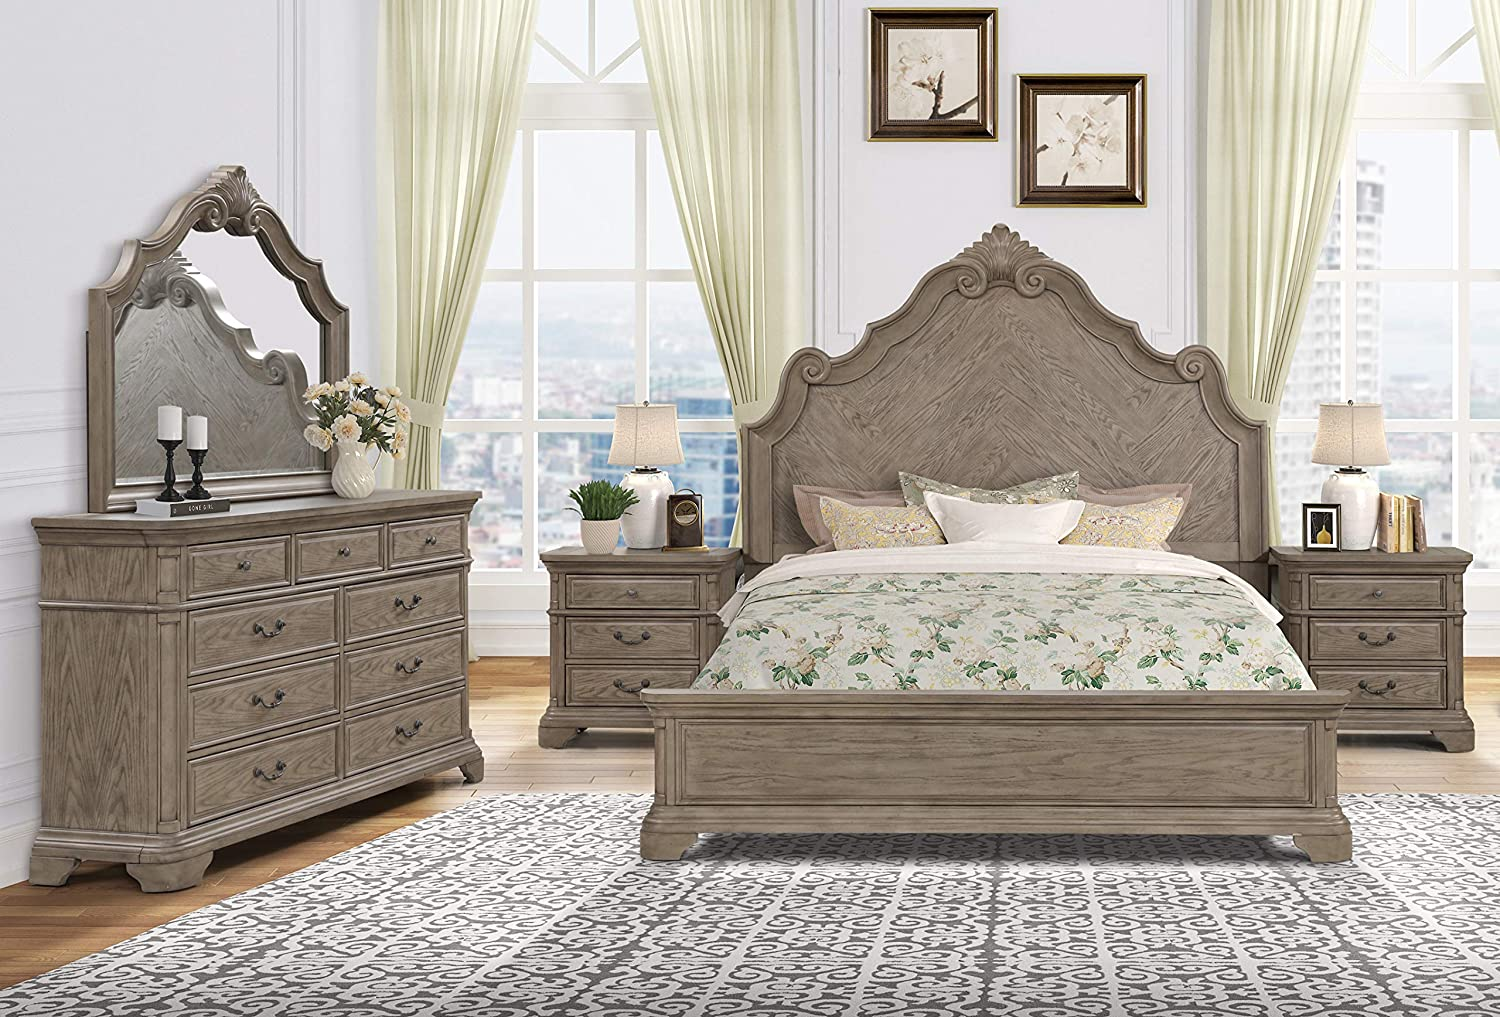 Roundhill Furniture Levan Max 56% OFF Carved Wood Set Queen Bed Special price with Panel